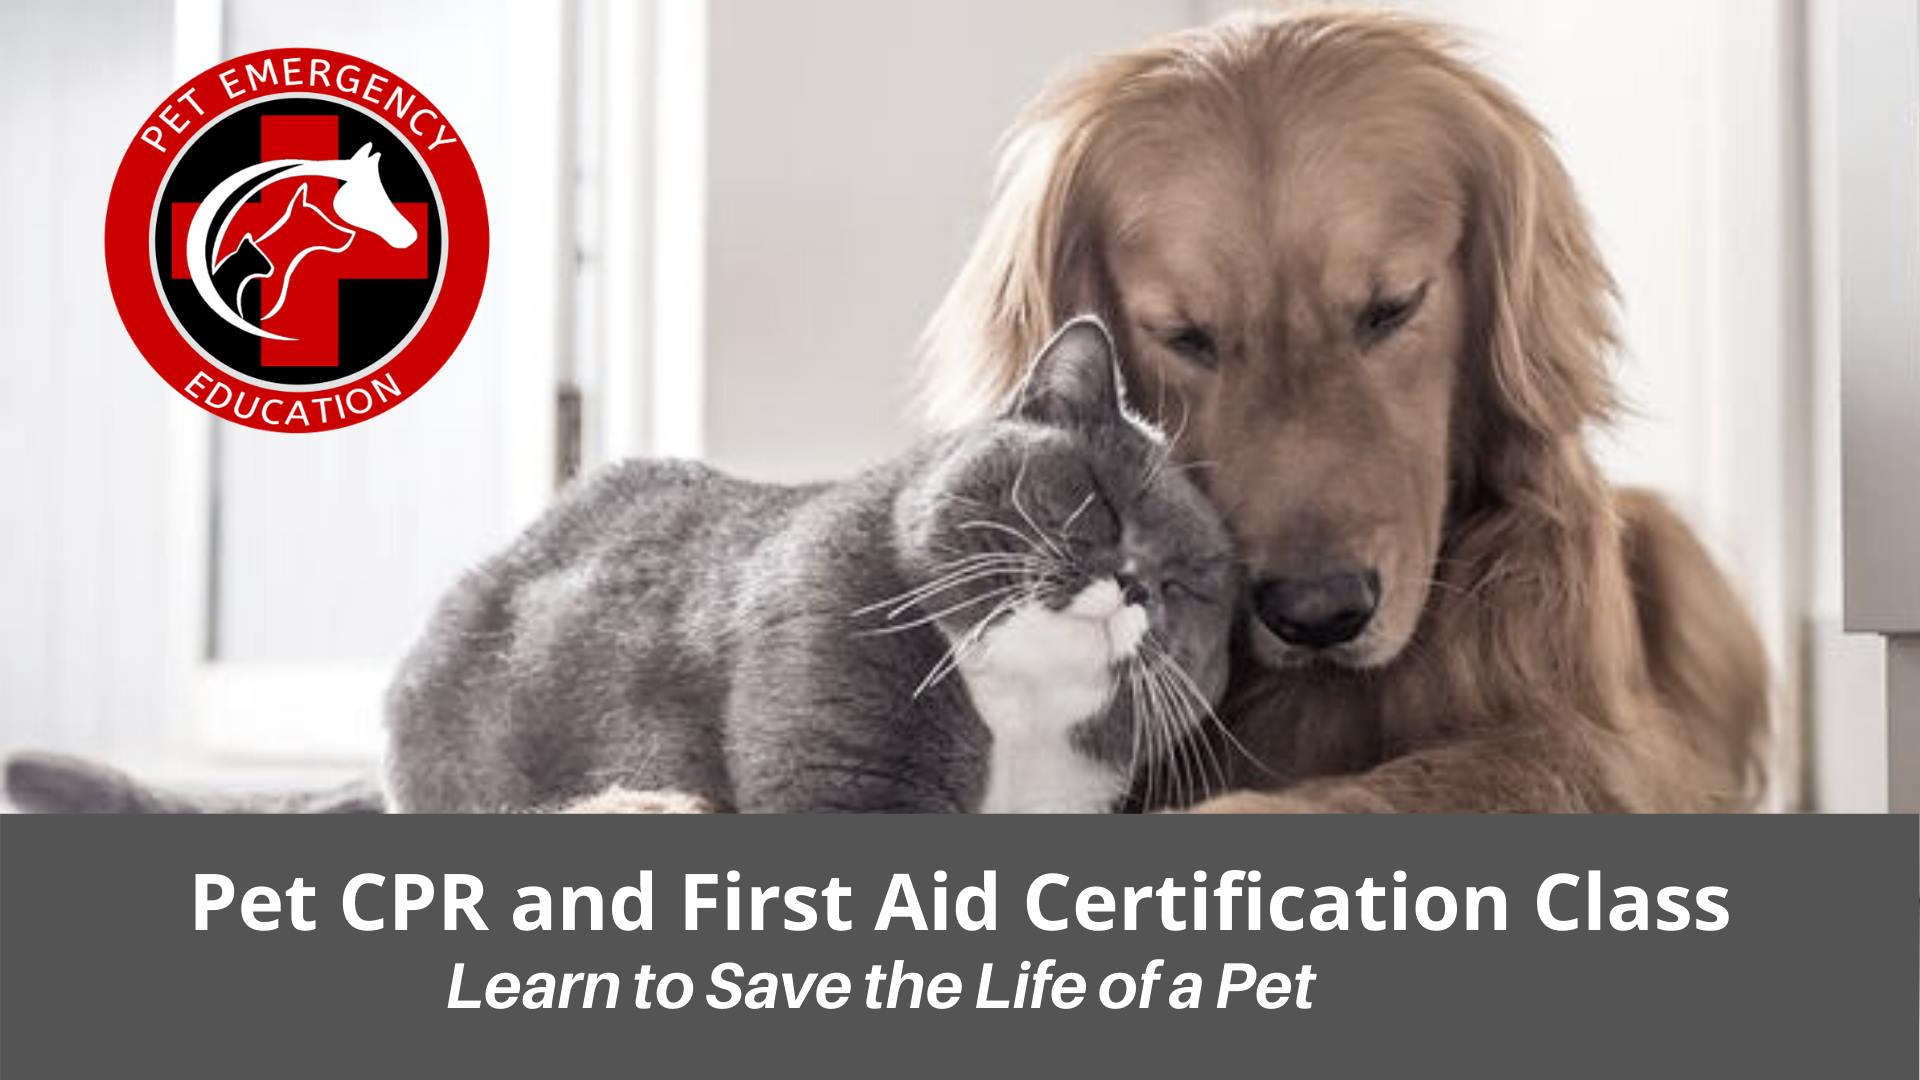 Pet CPR and First Aid Certification class and Fundraiser